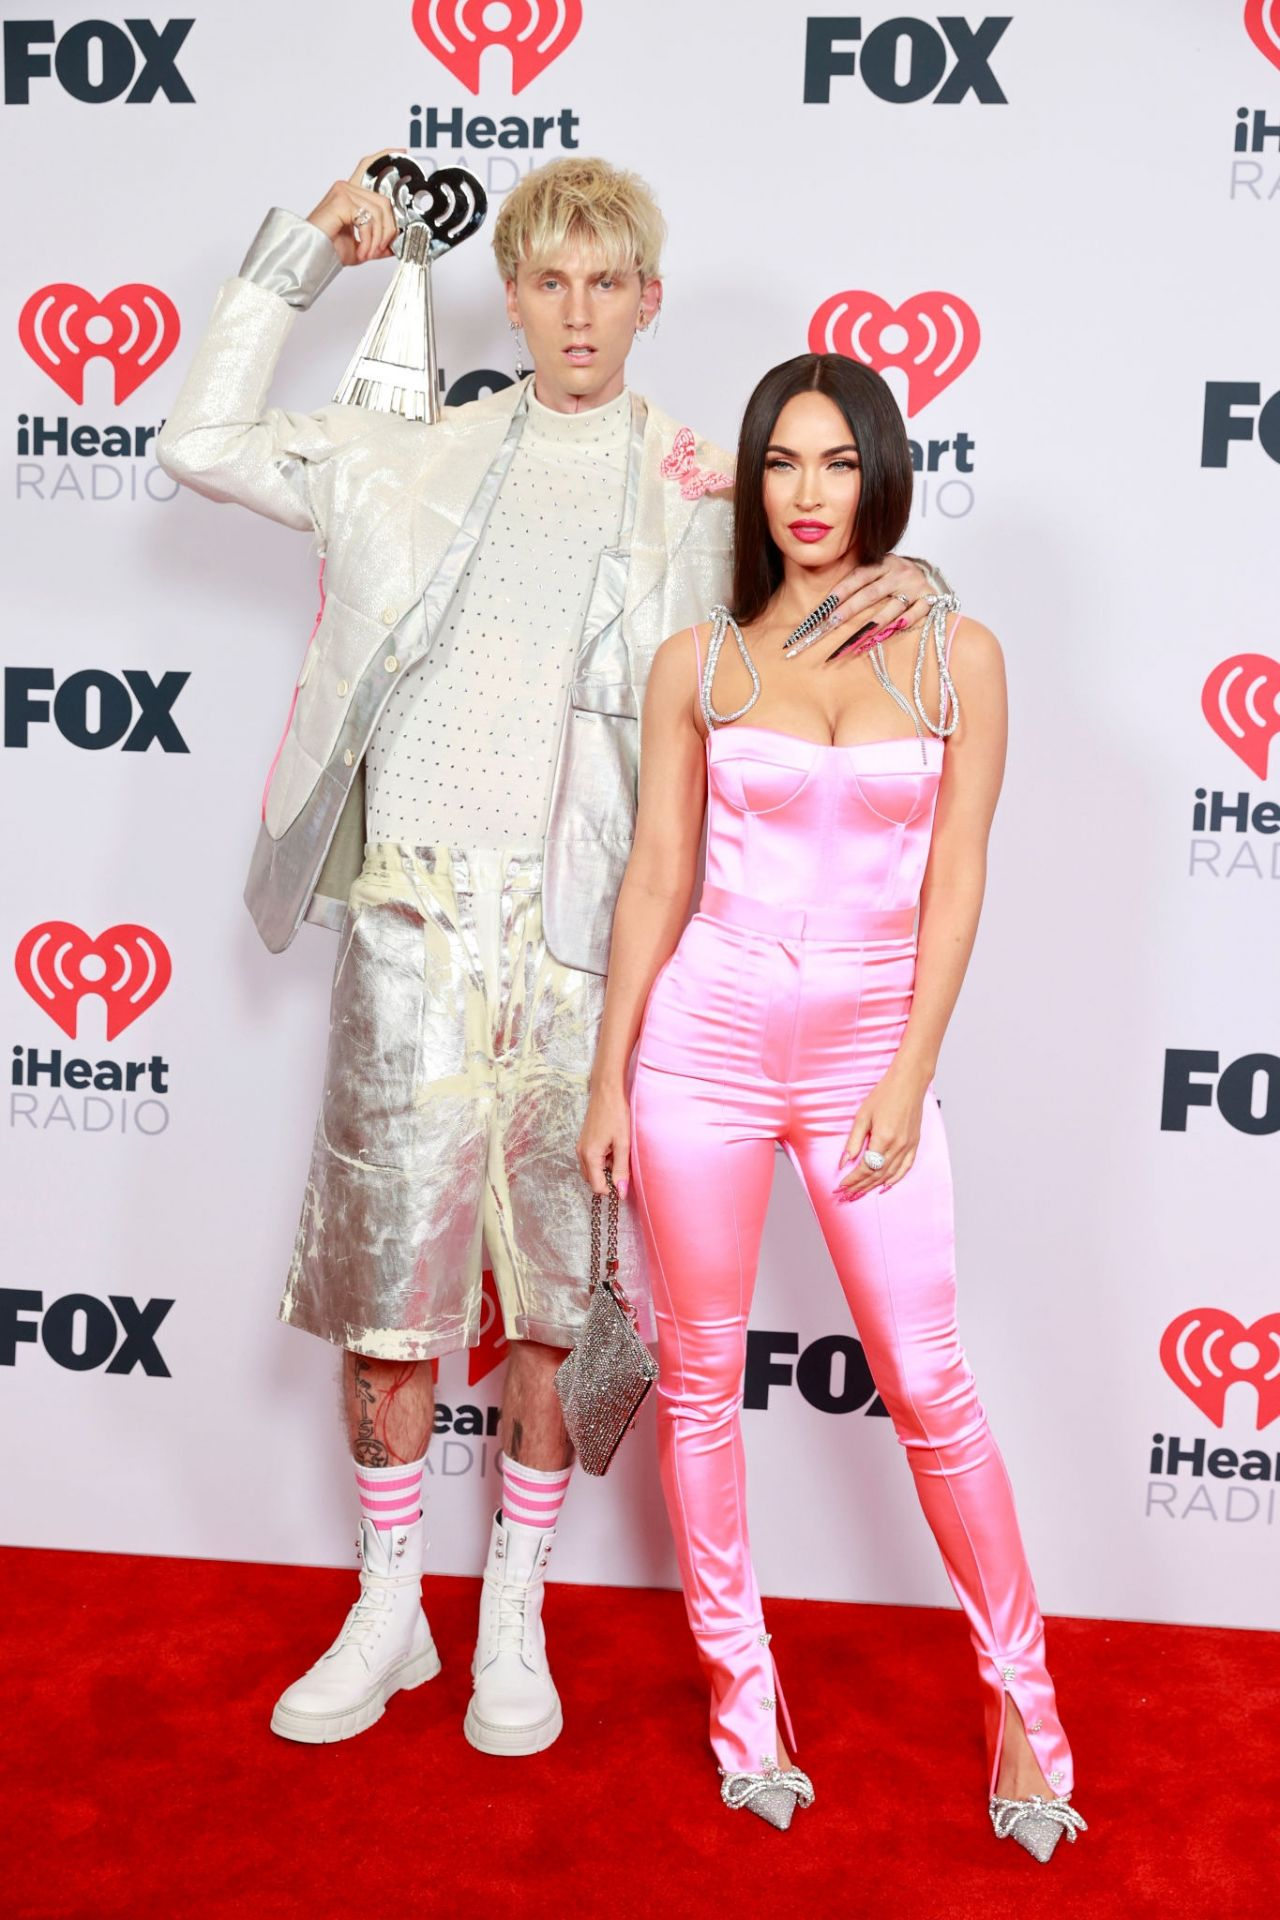 Megan Fox and Machine Gun Kelly - 2021 iHeartRadio Music Awards at The Dolby Theatre in Los Angeles